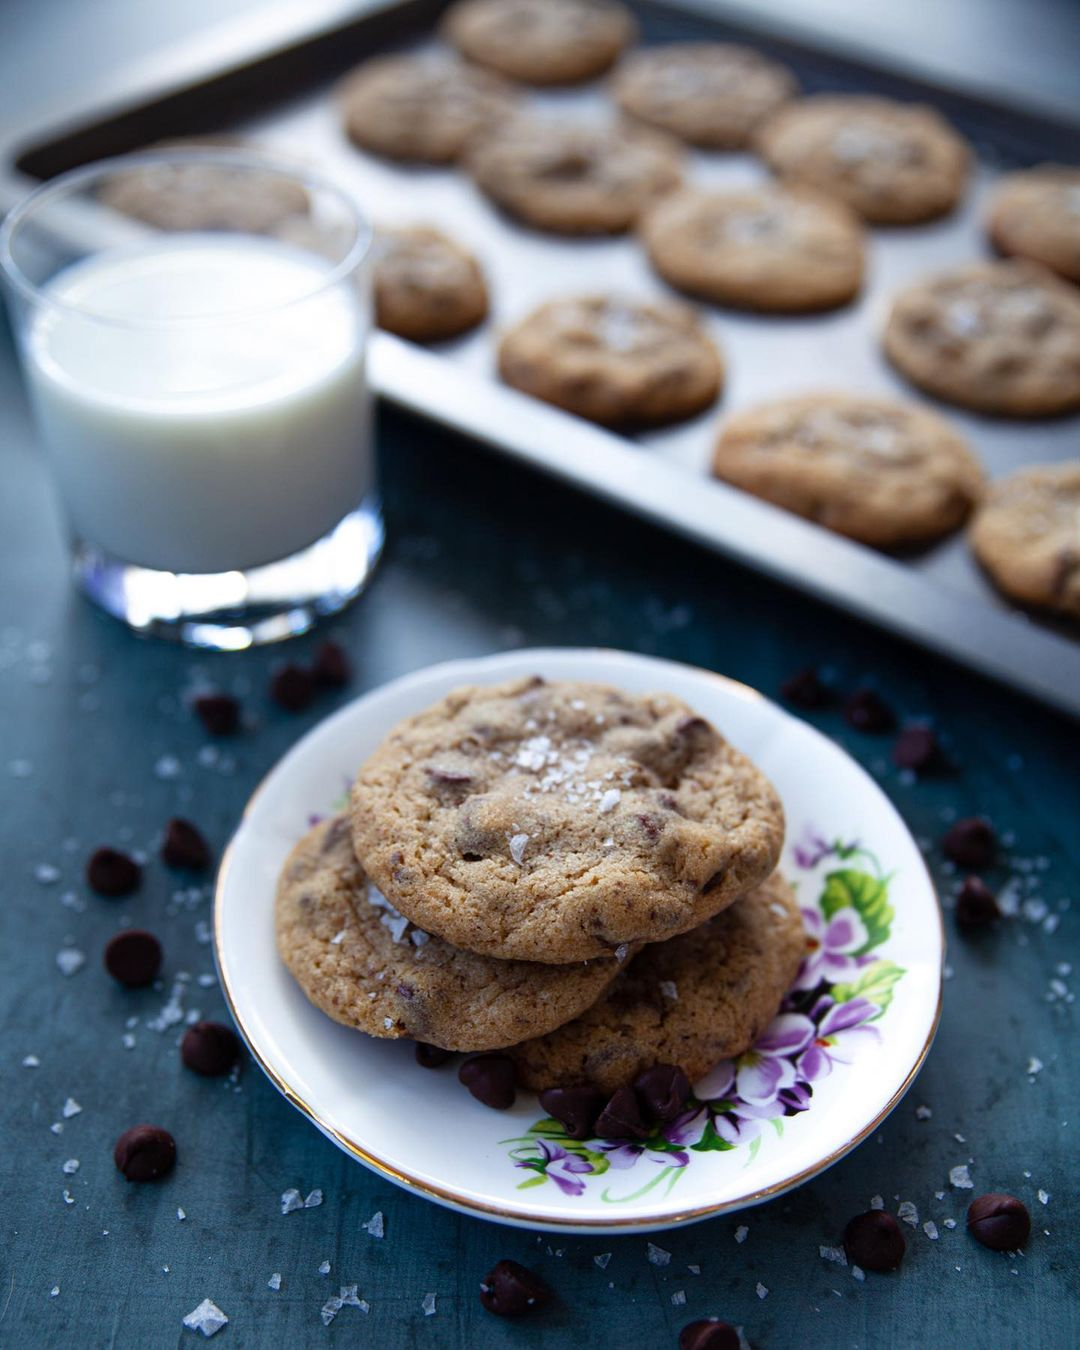 A plate of licorice cookies and a glass of milk.